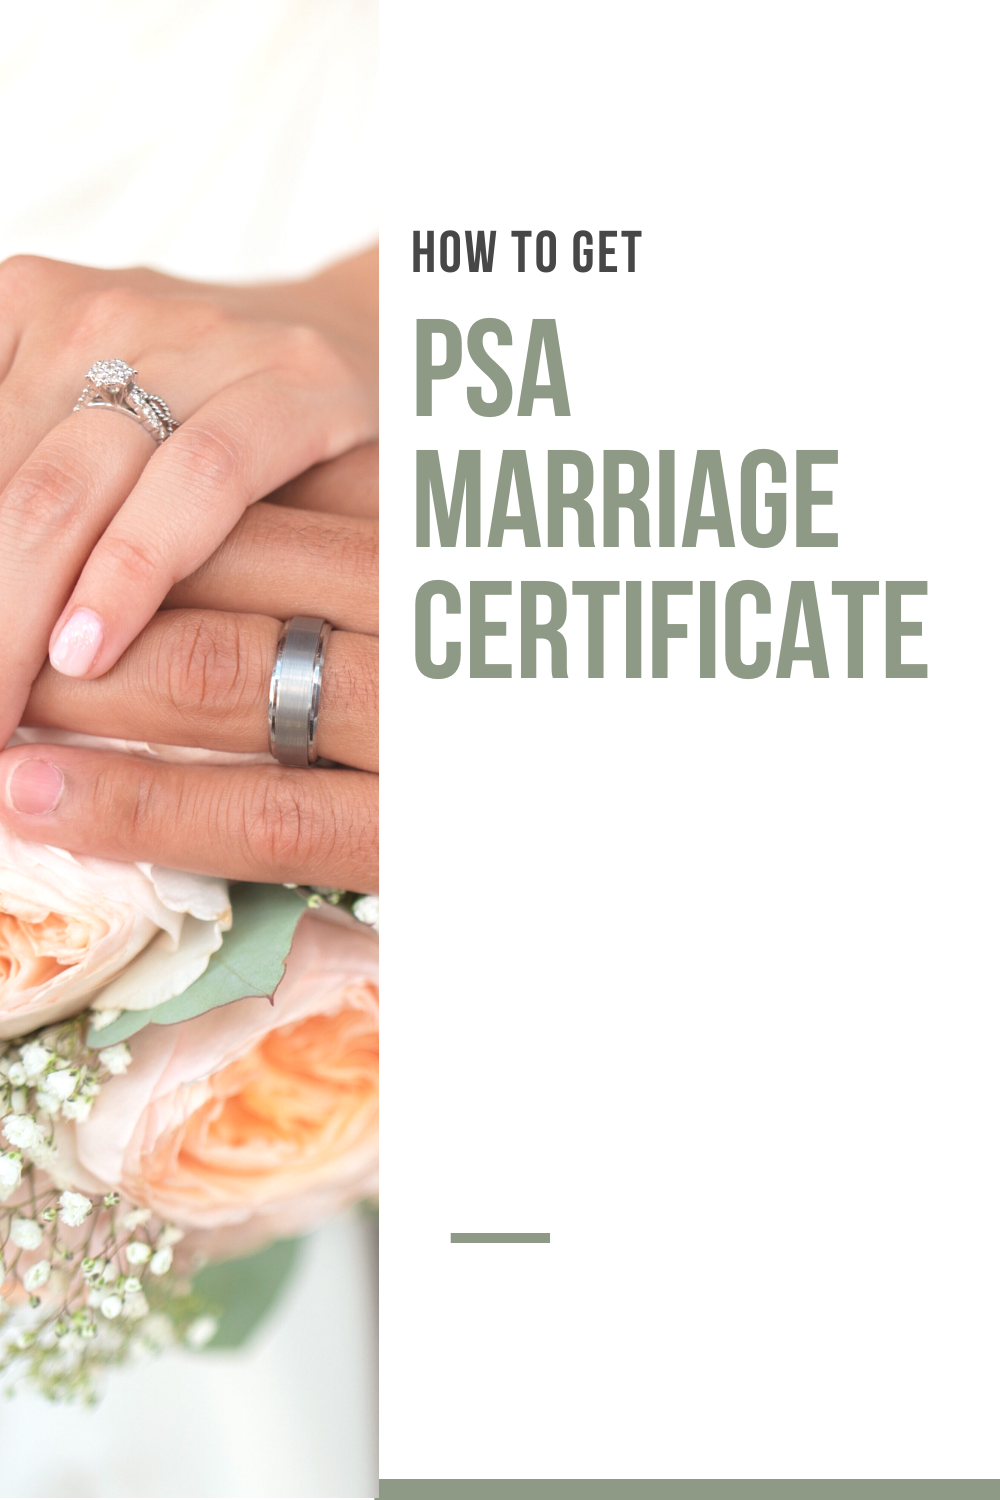 How to get a PSA Marriage Certificate